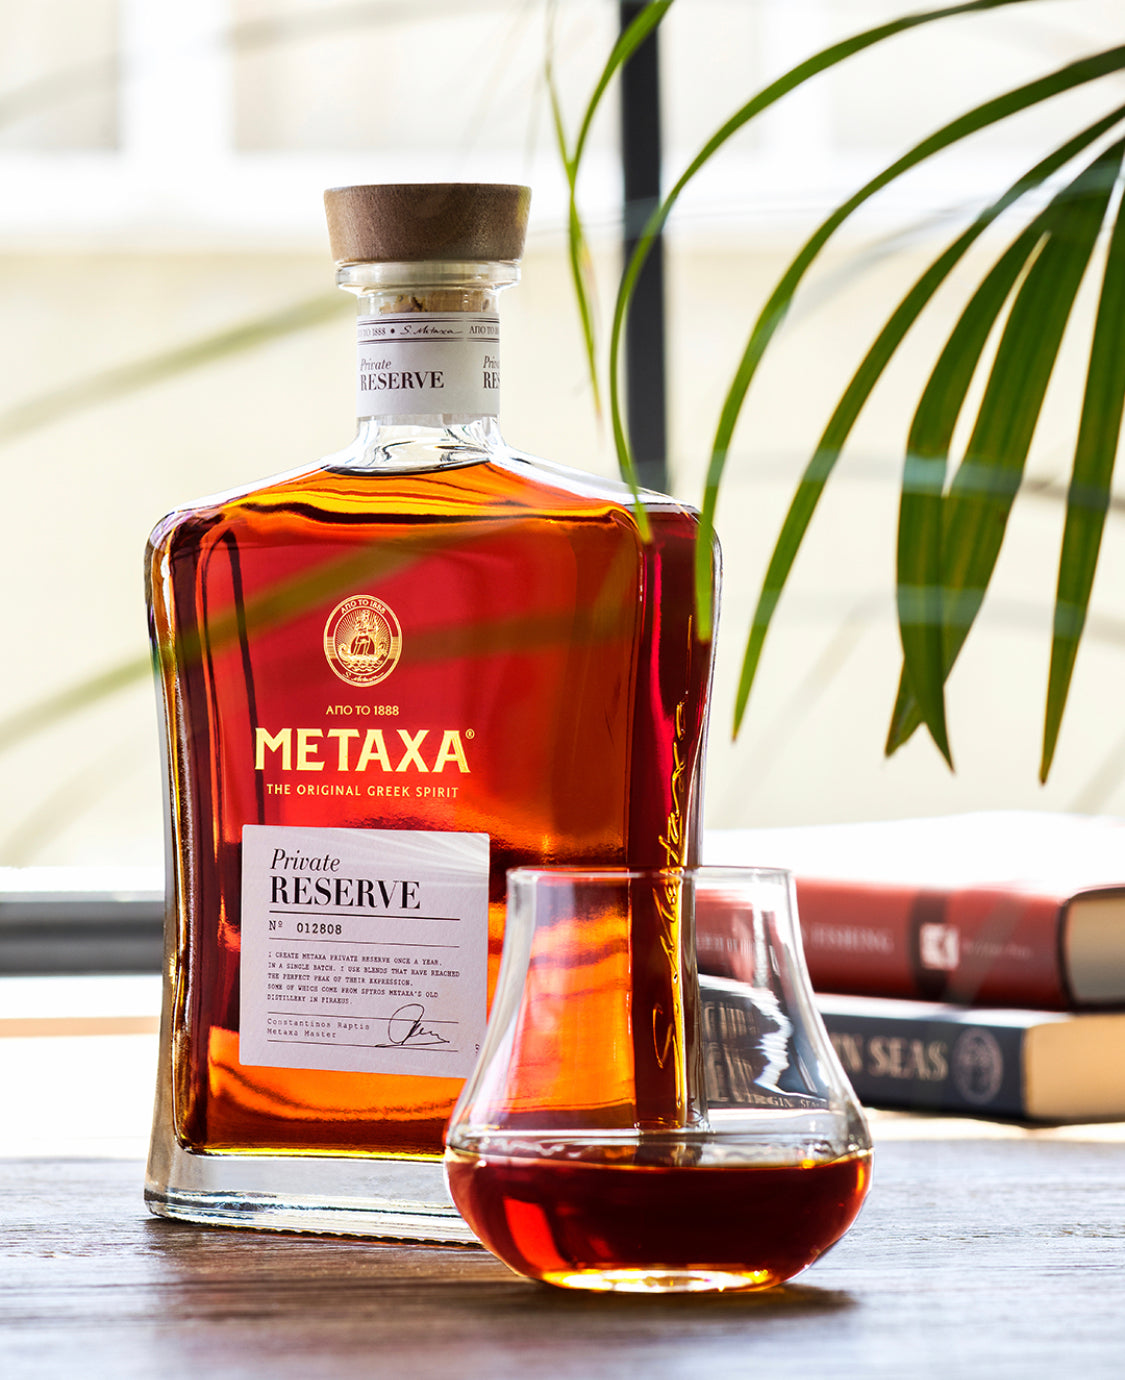 Metaxa Private Reserve No.24785 700ml 40%vol